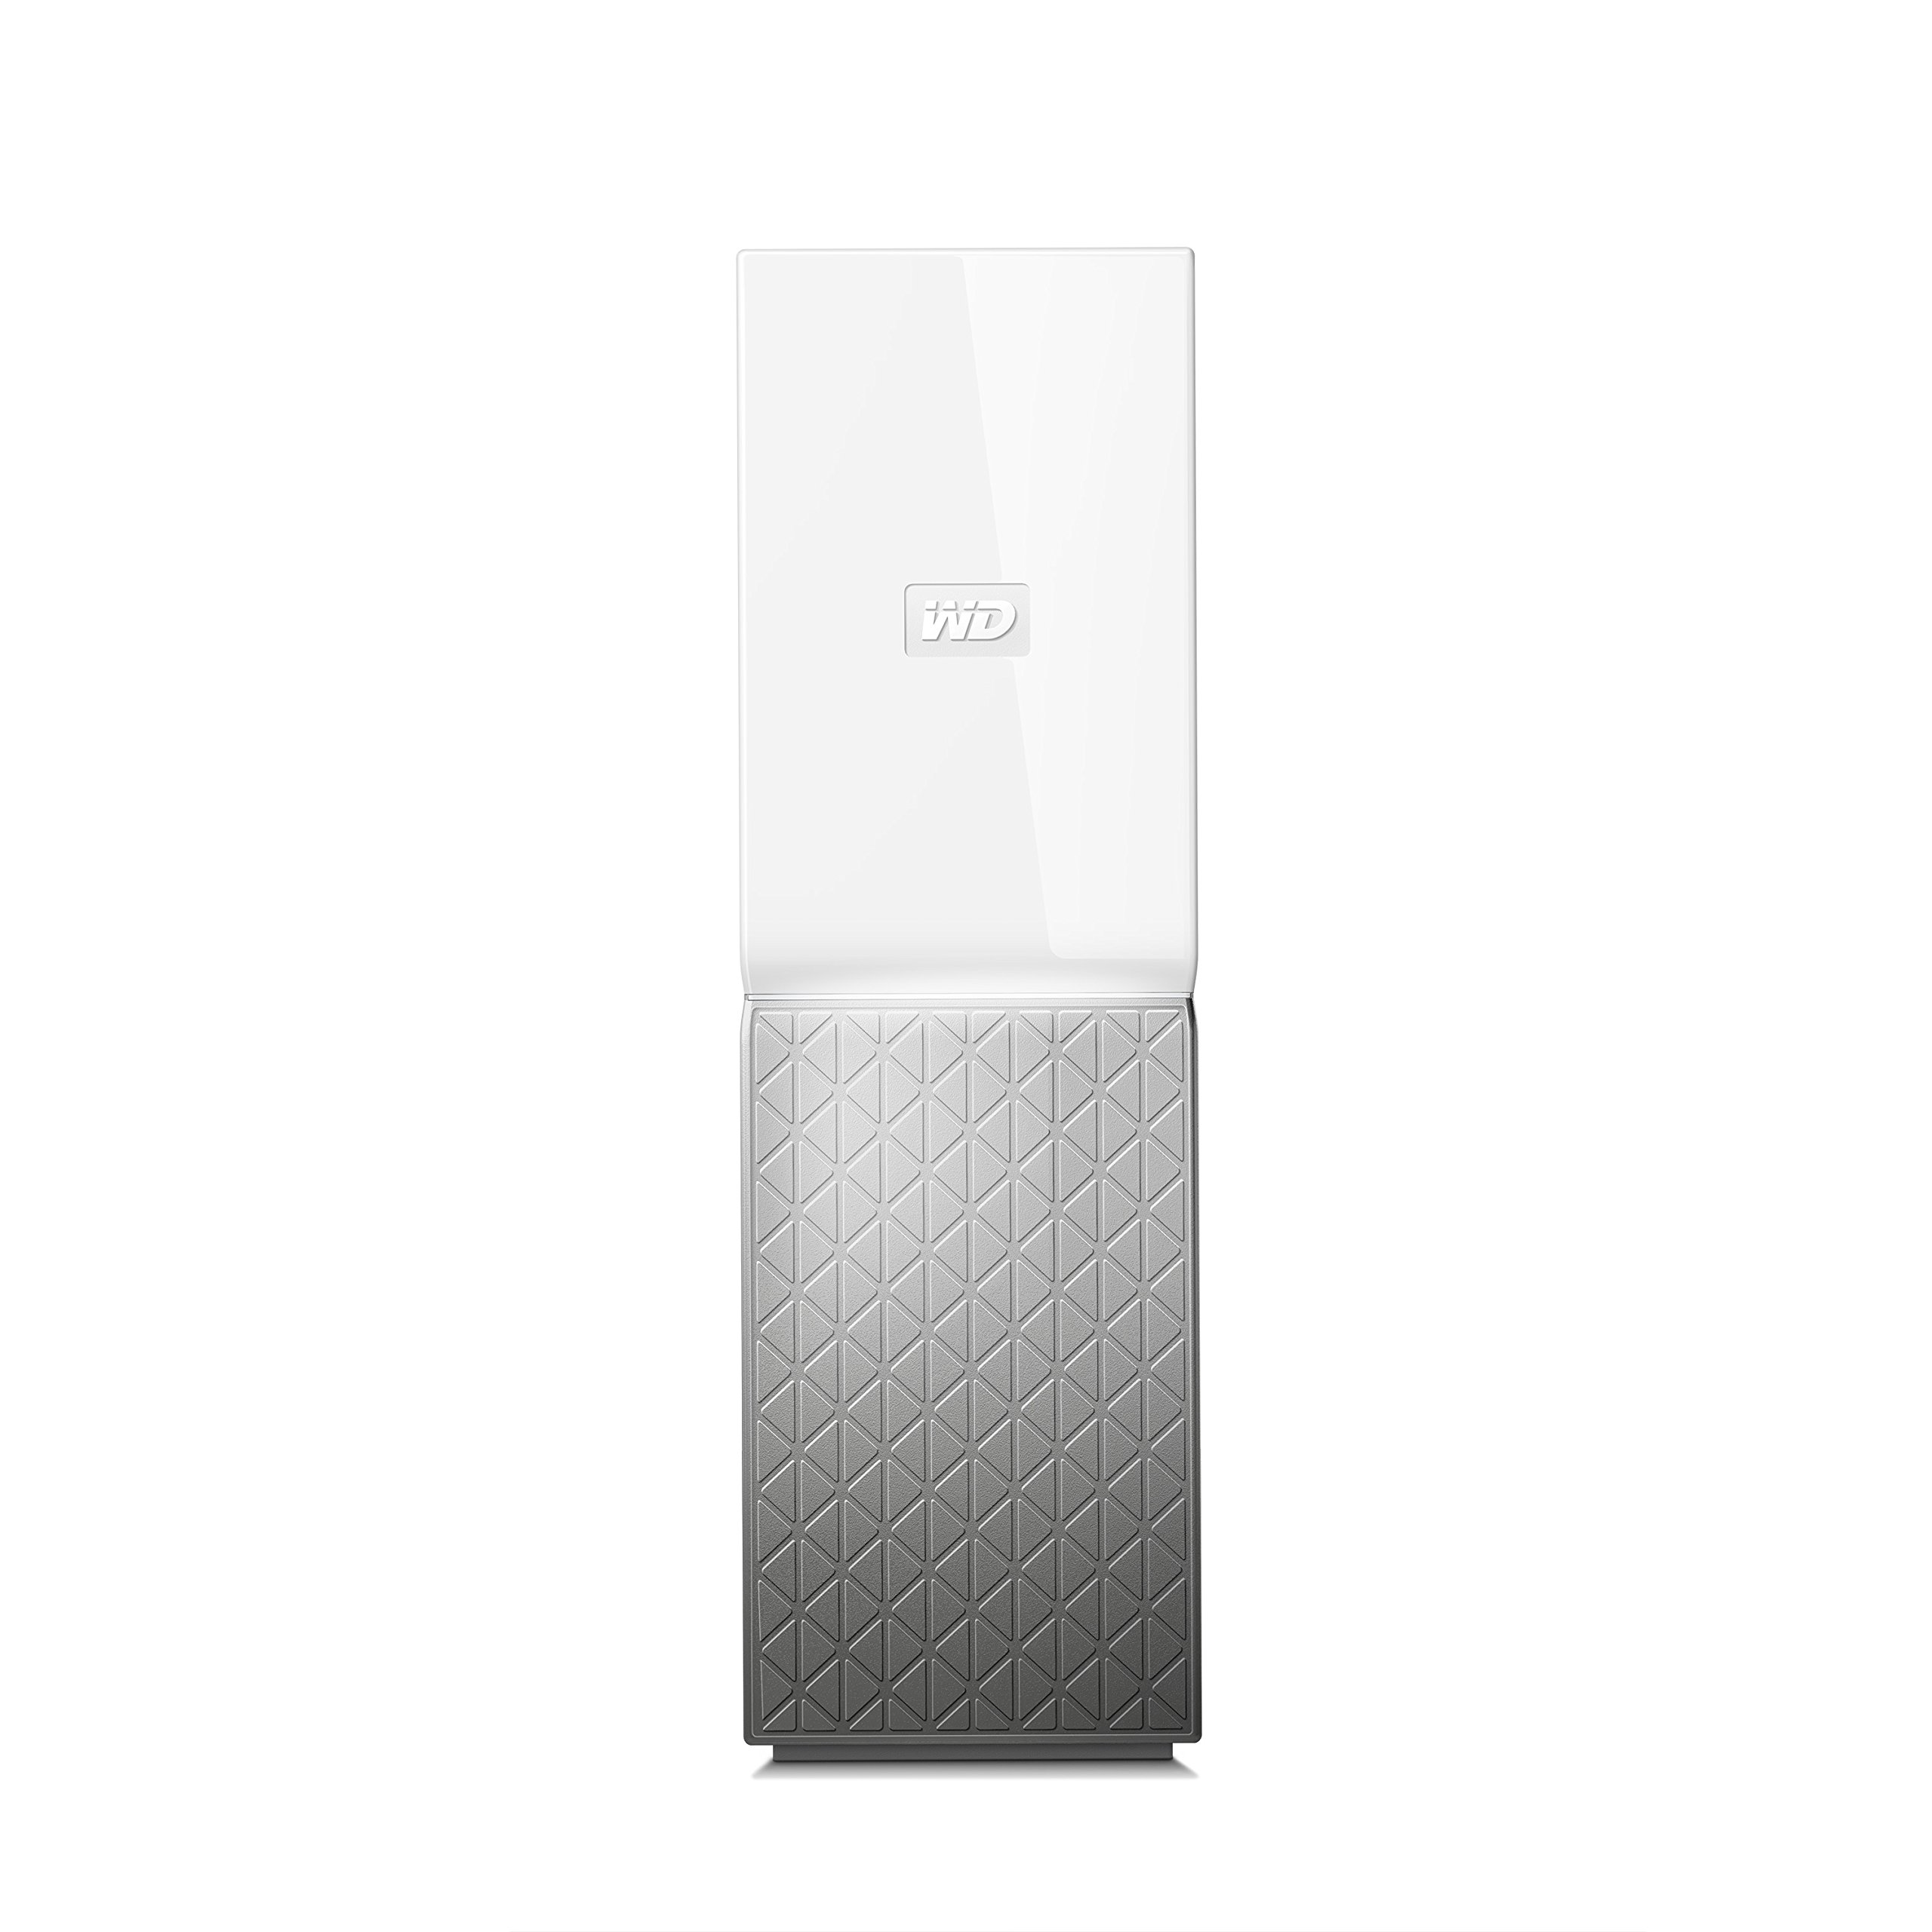 WD 8TB My Cloud Home Personal Cloud Storage - WDBVXC0080HWT-NESN by Western Digital (Image #3)